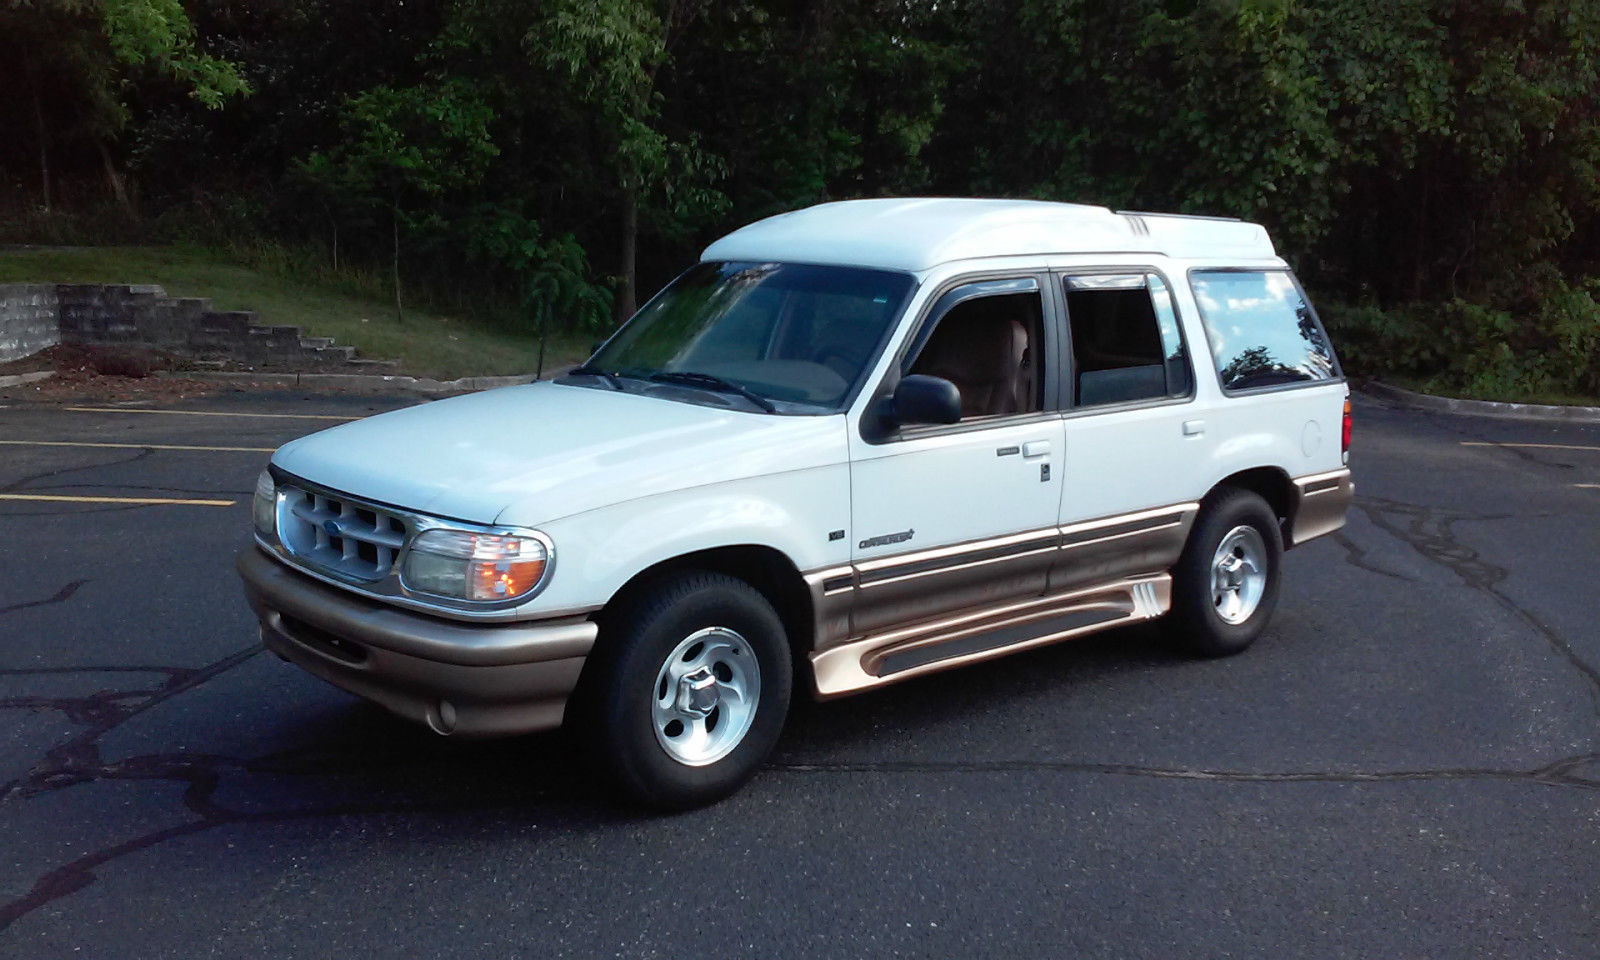 Find this 1996 ford explorer centaurus conversion here on ebay offered for 4900 buy it now located in grand rapids mi